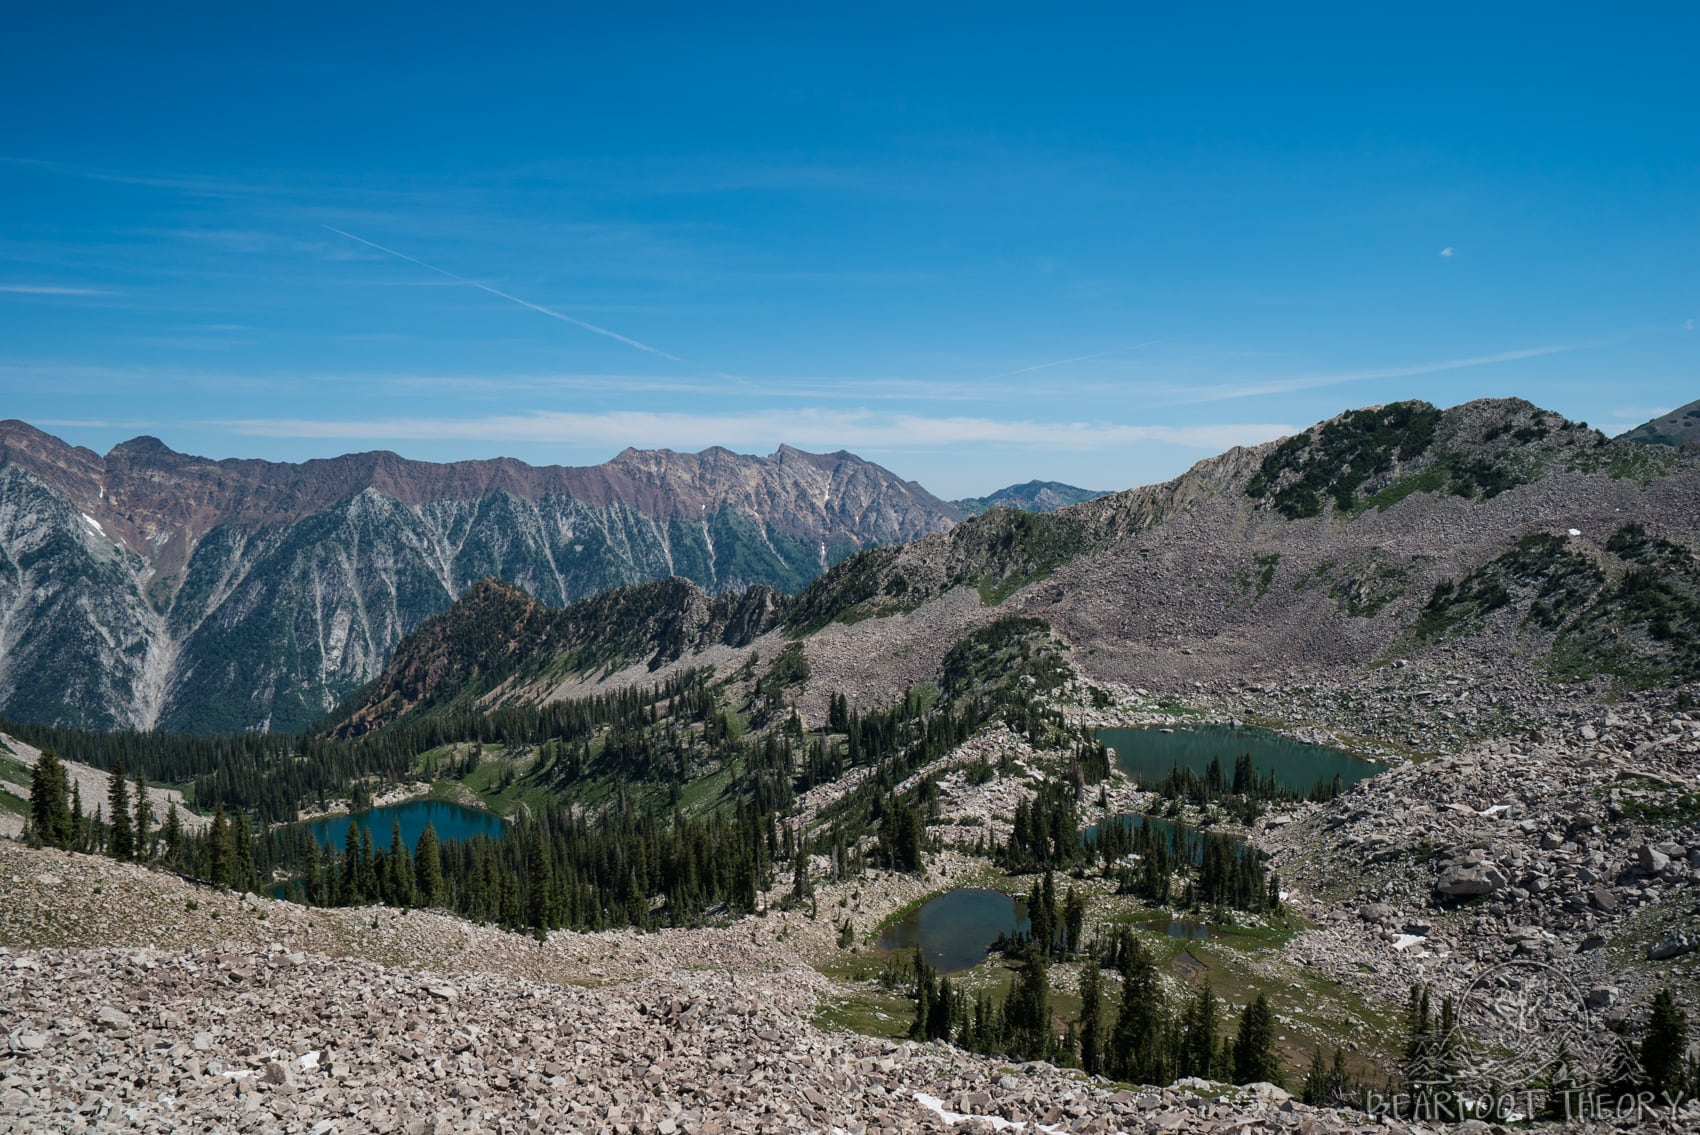 The views of Red Pine Lake on the way up to the Pfeifferhorn, the third tallest peak near Salt Lake City